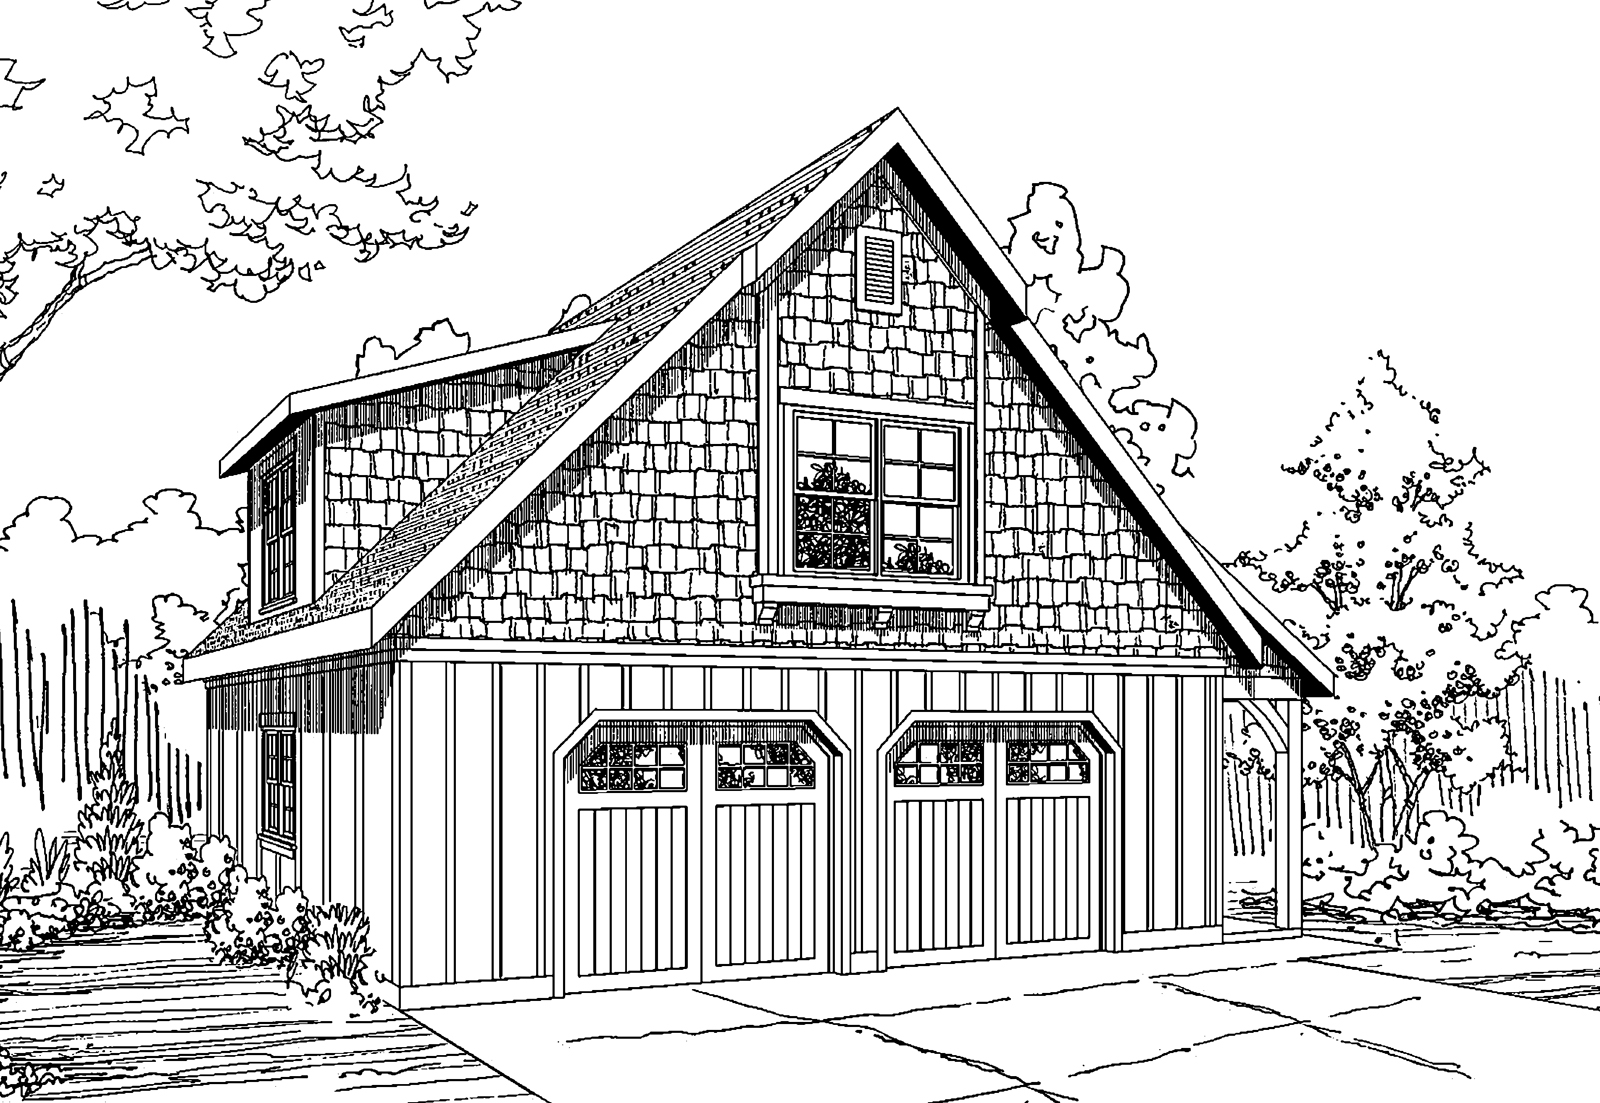 Craftsman house plans garage w living 20 060 for Garage plans with bonus room